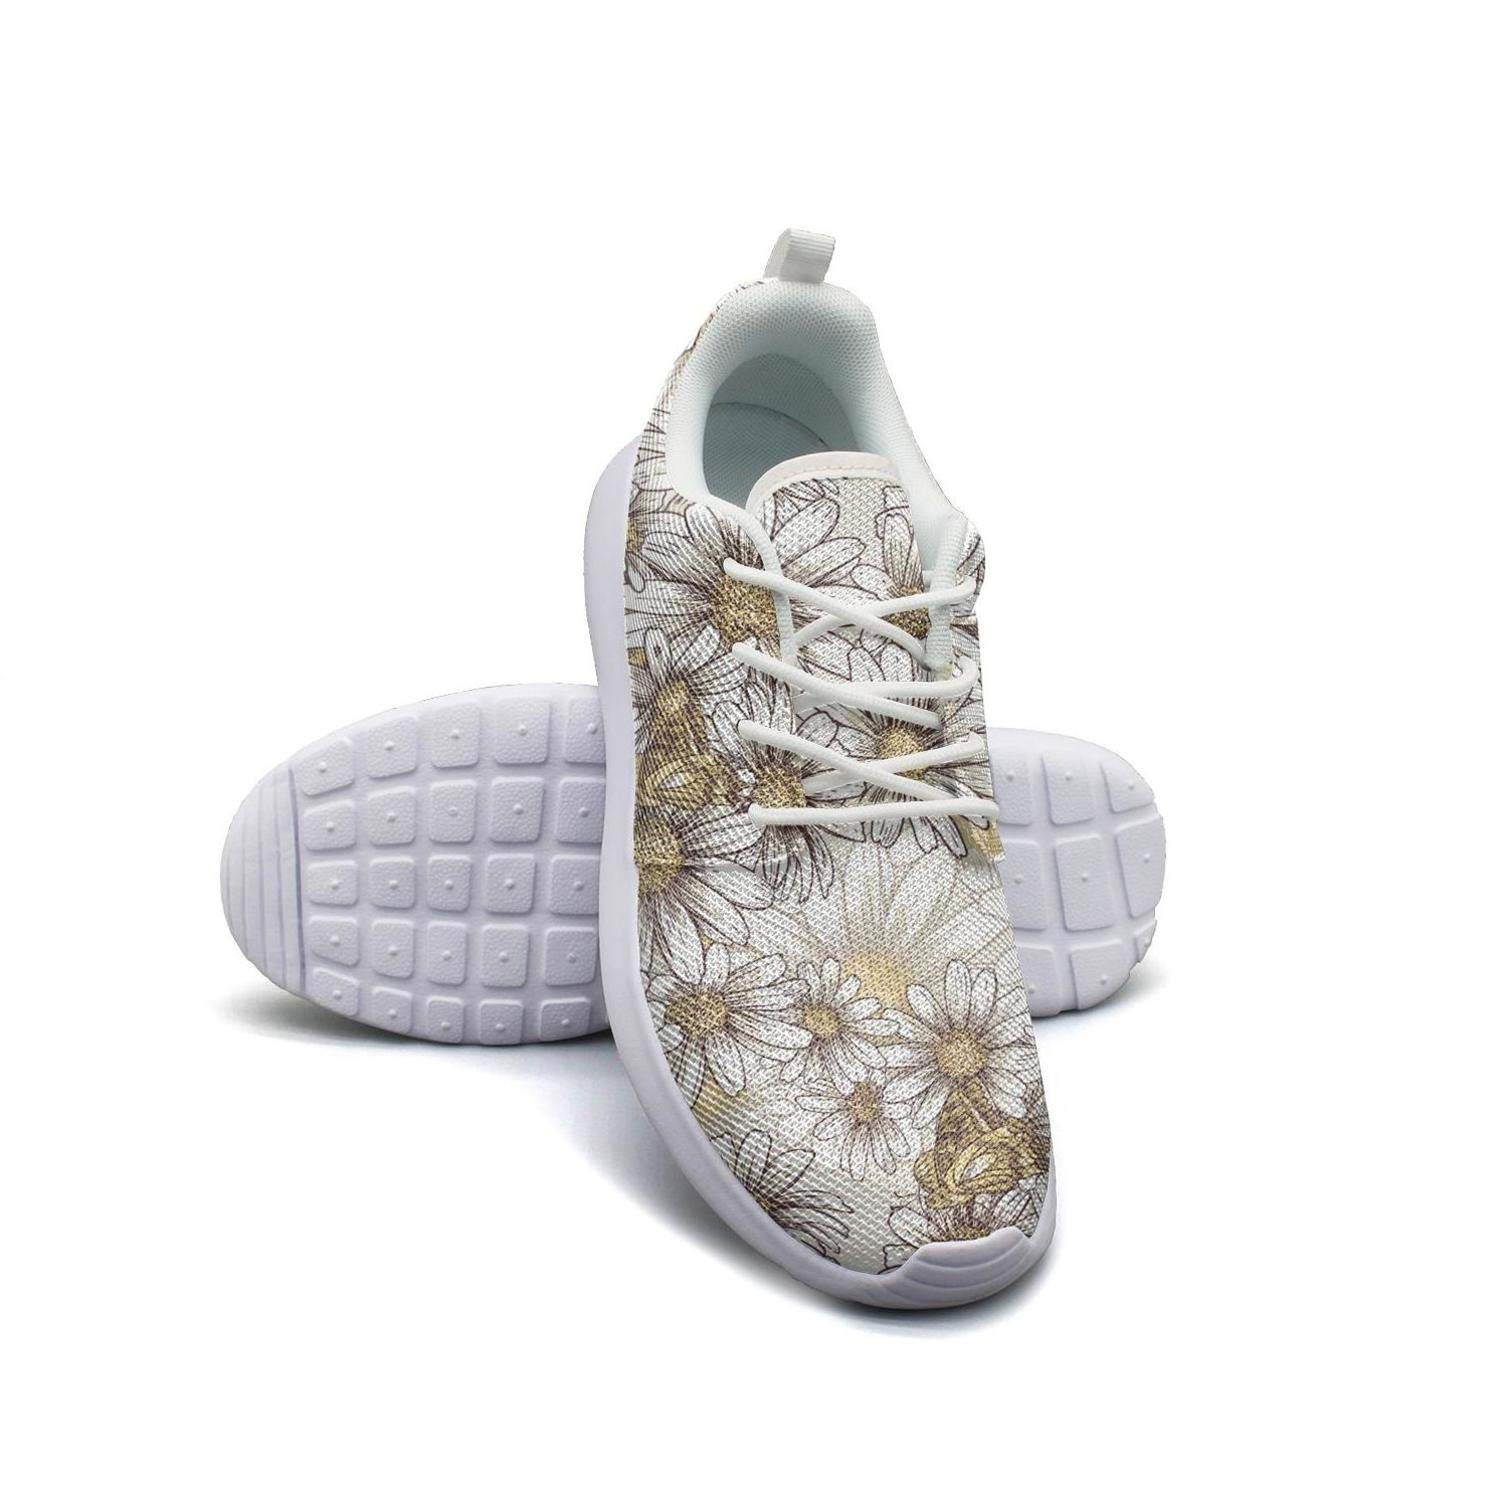 Dwarf Sunflower Seeds Yellow Decorations Basketball Sneakers for Men slip on Lightweight Male Running Shoes